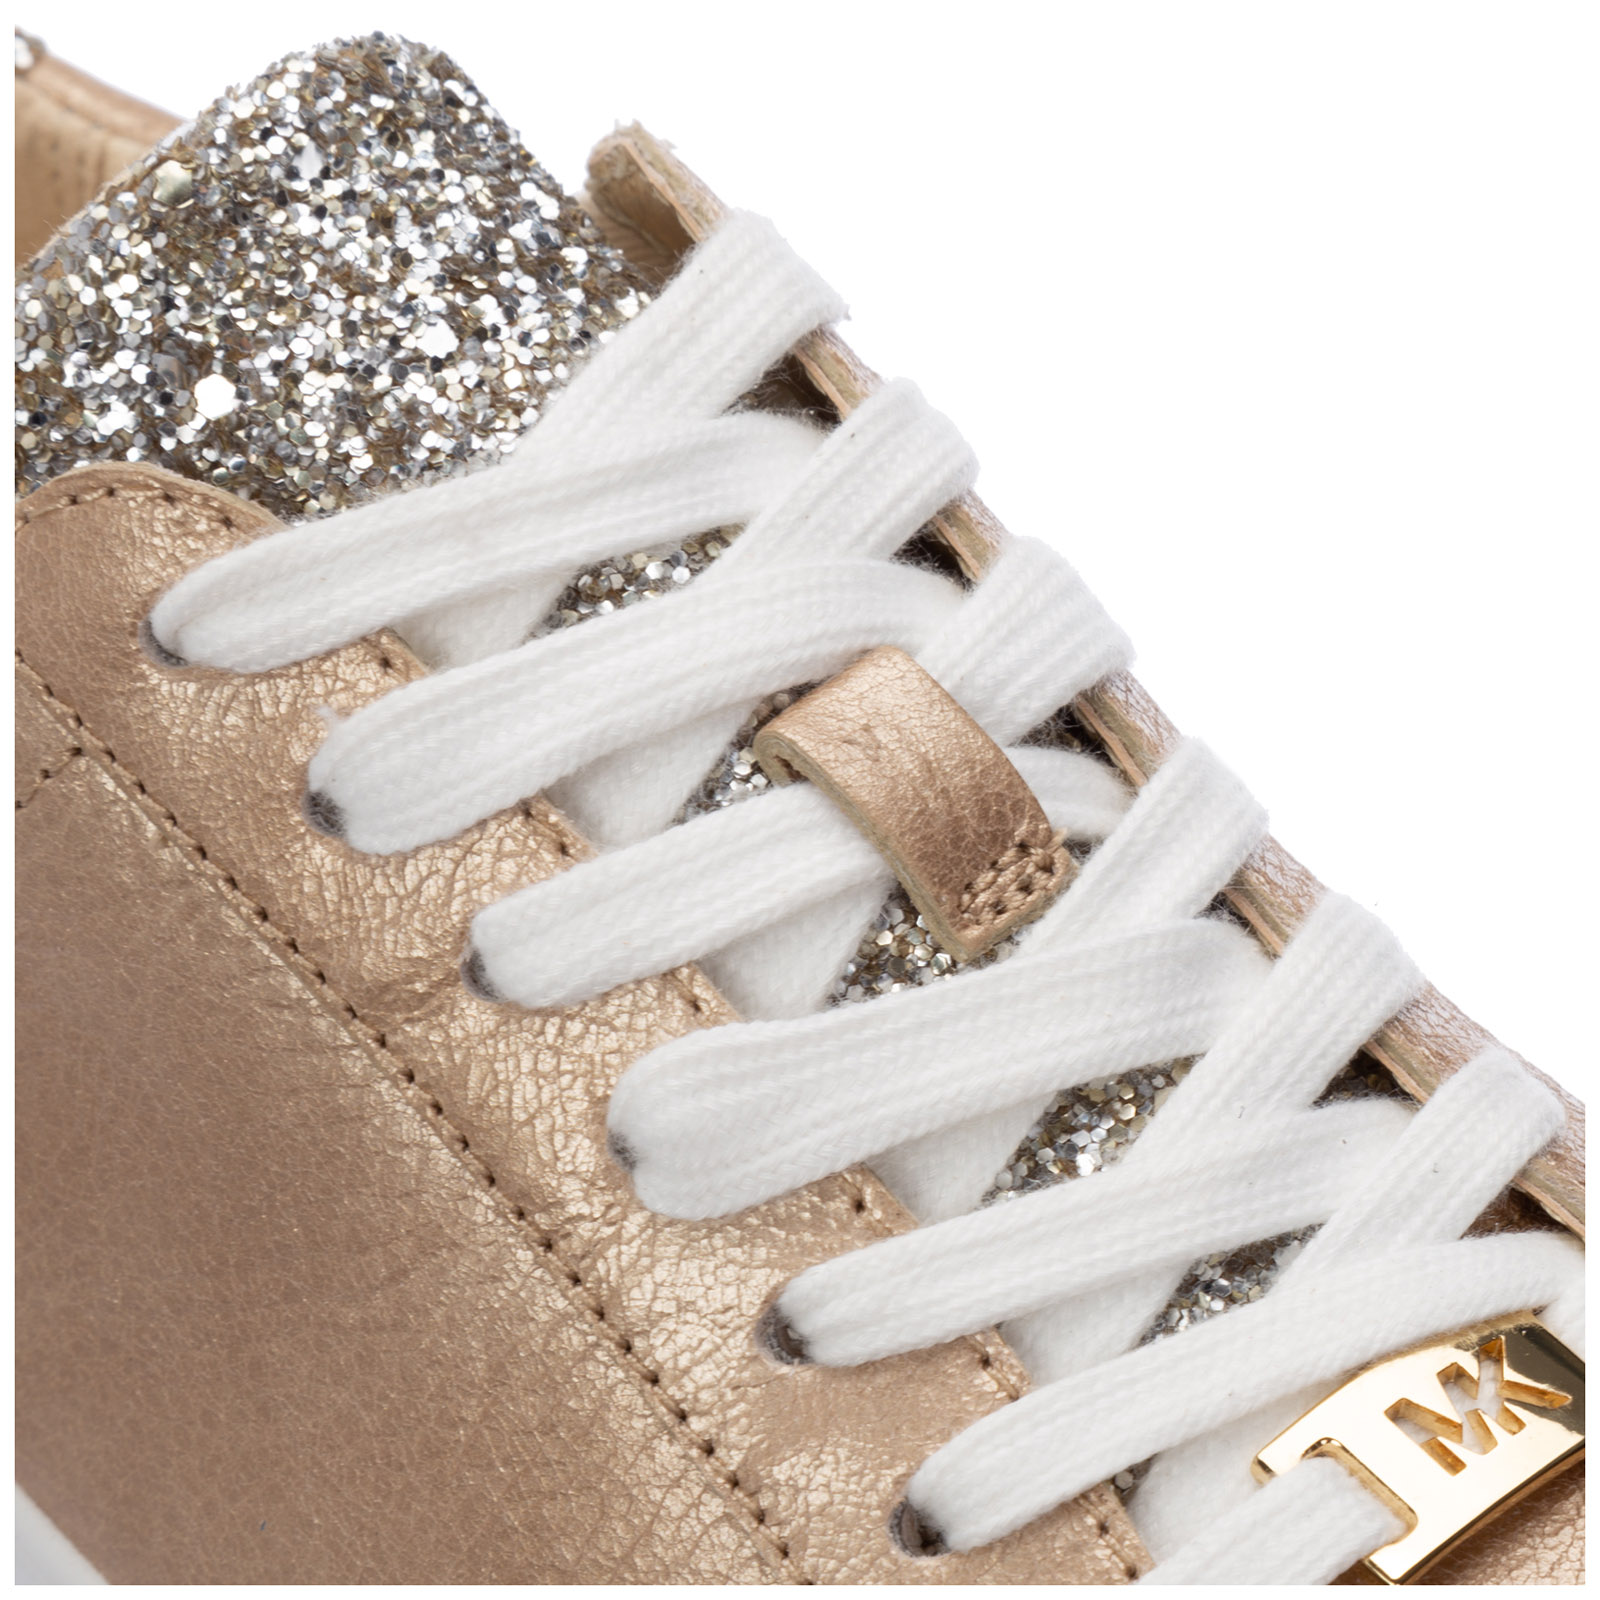 Women's shoes leather trainers sneakers irving